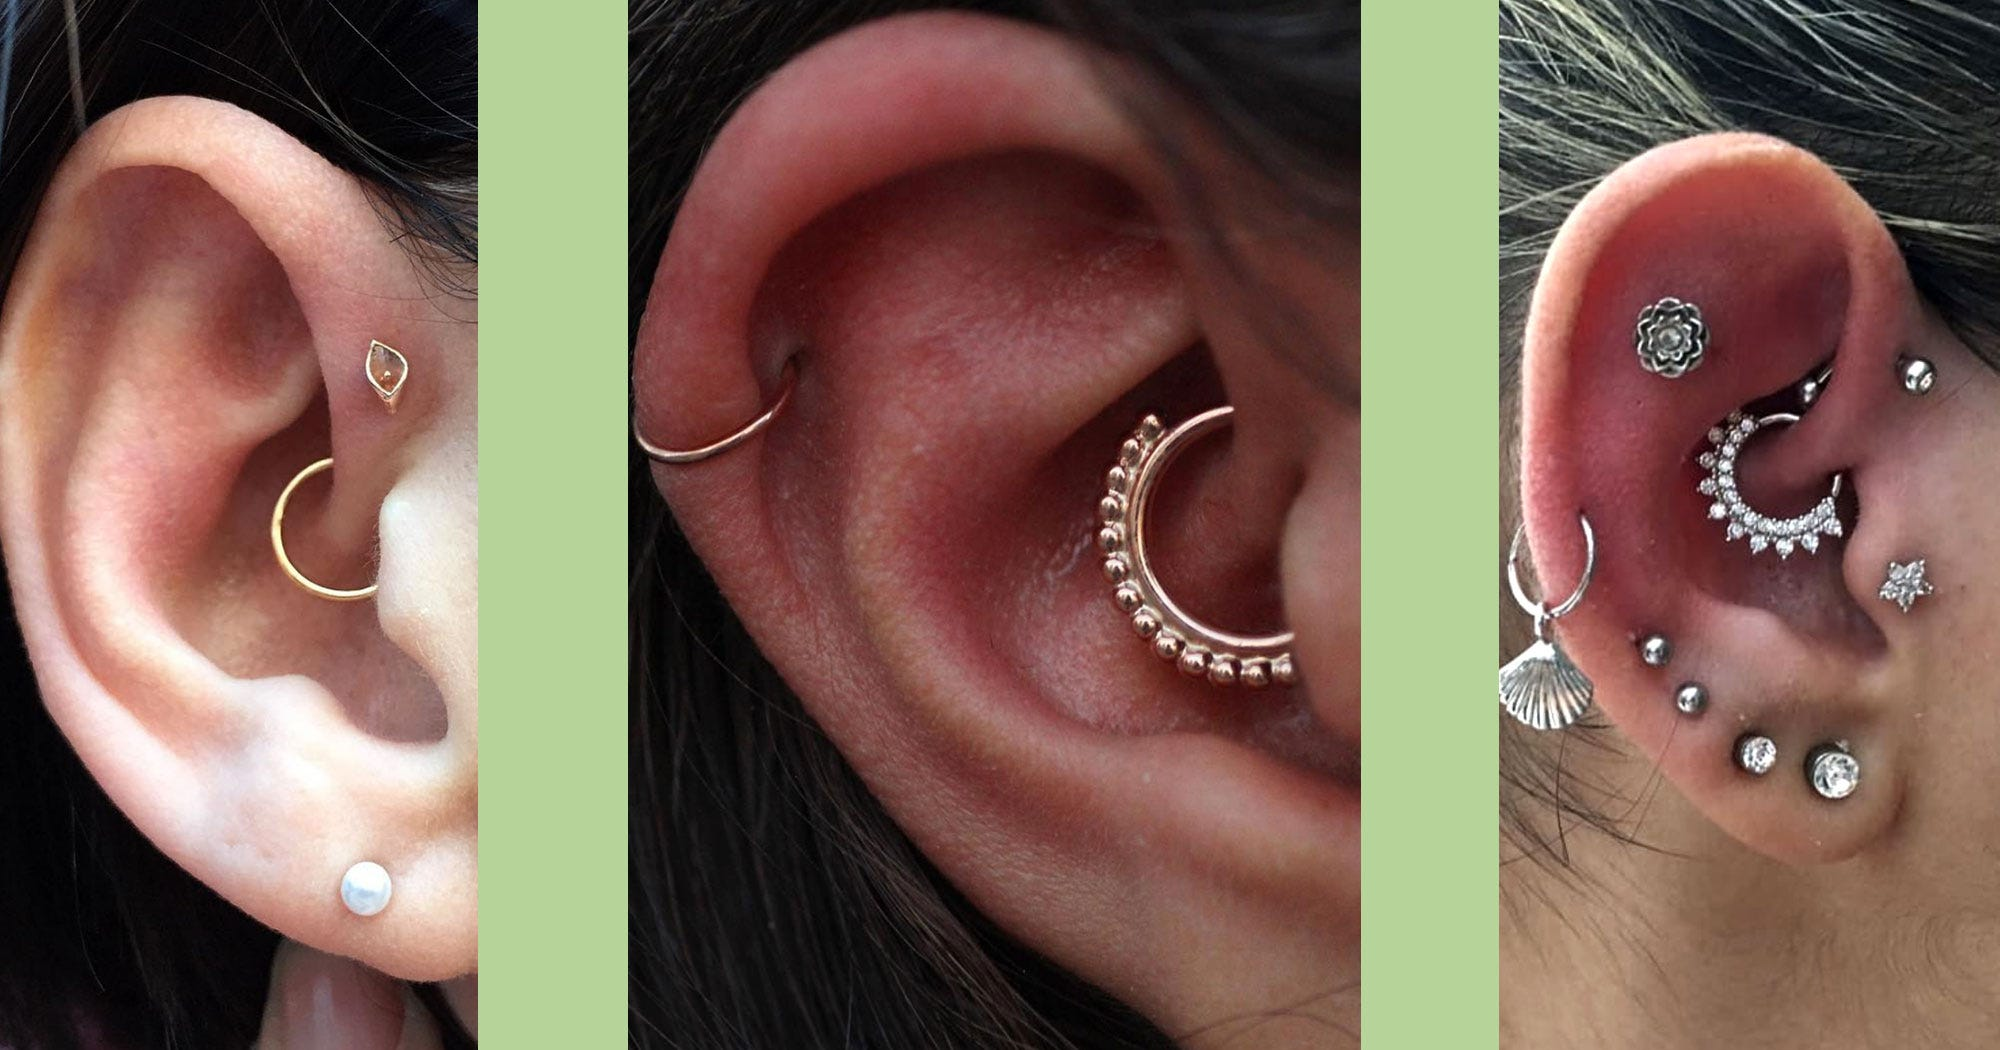 What Is A Daith Piercing Can It Stop Migraines